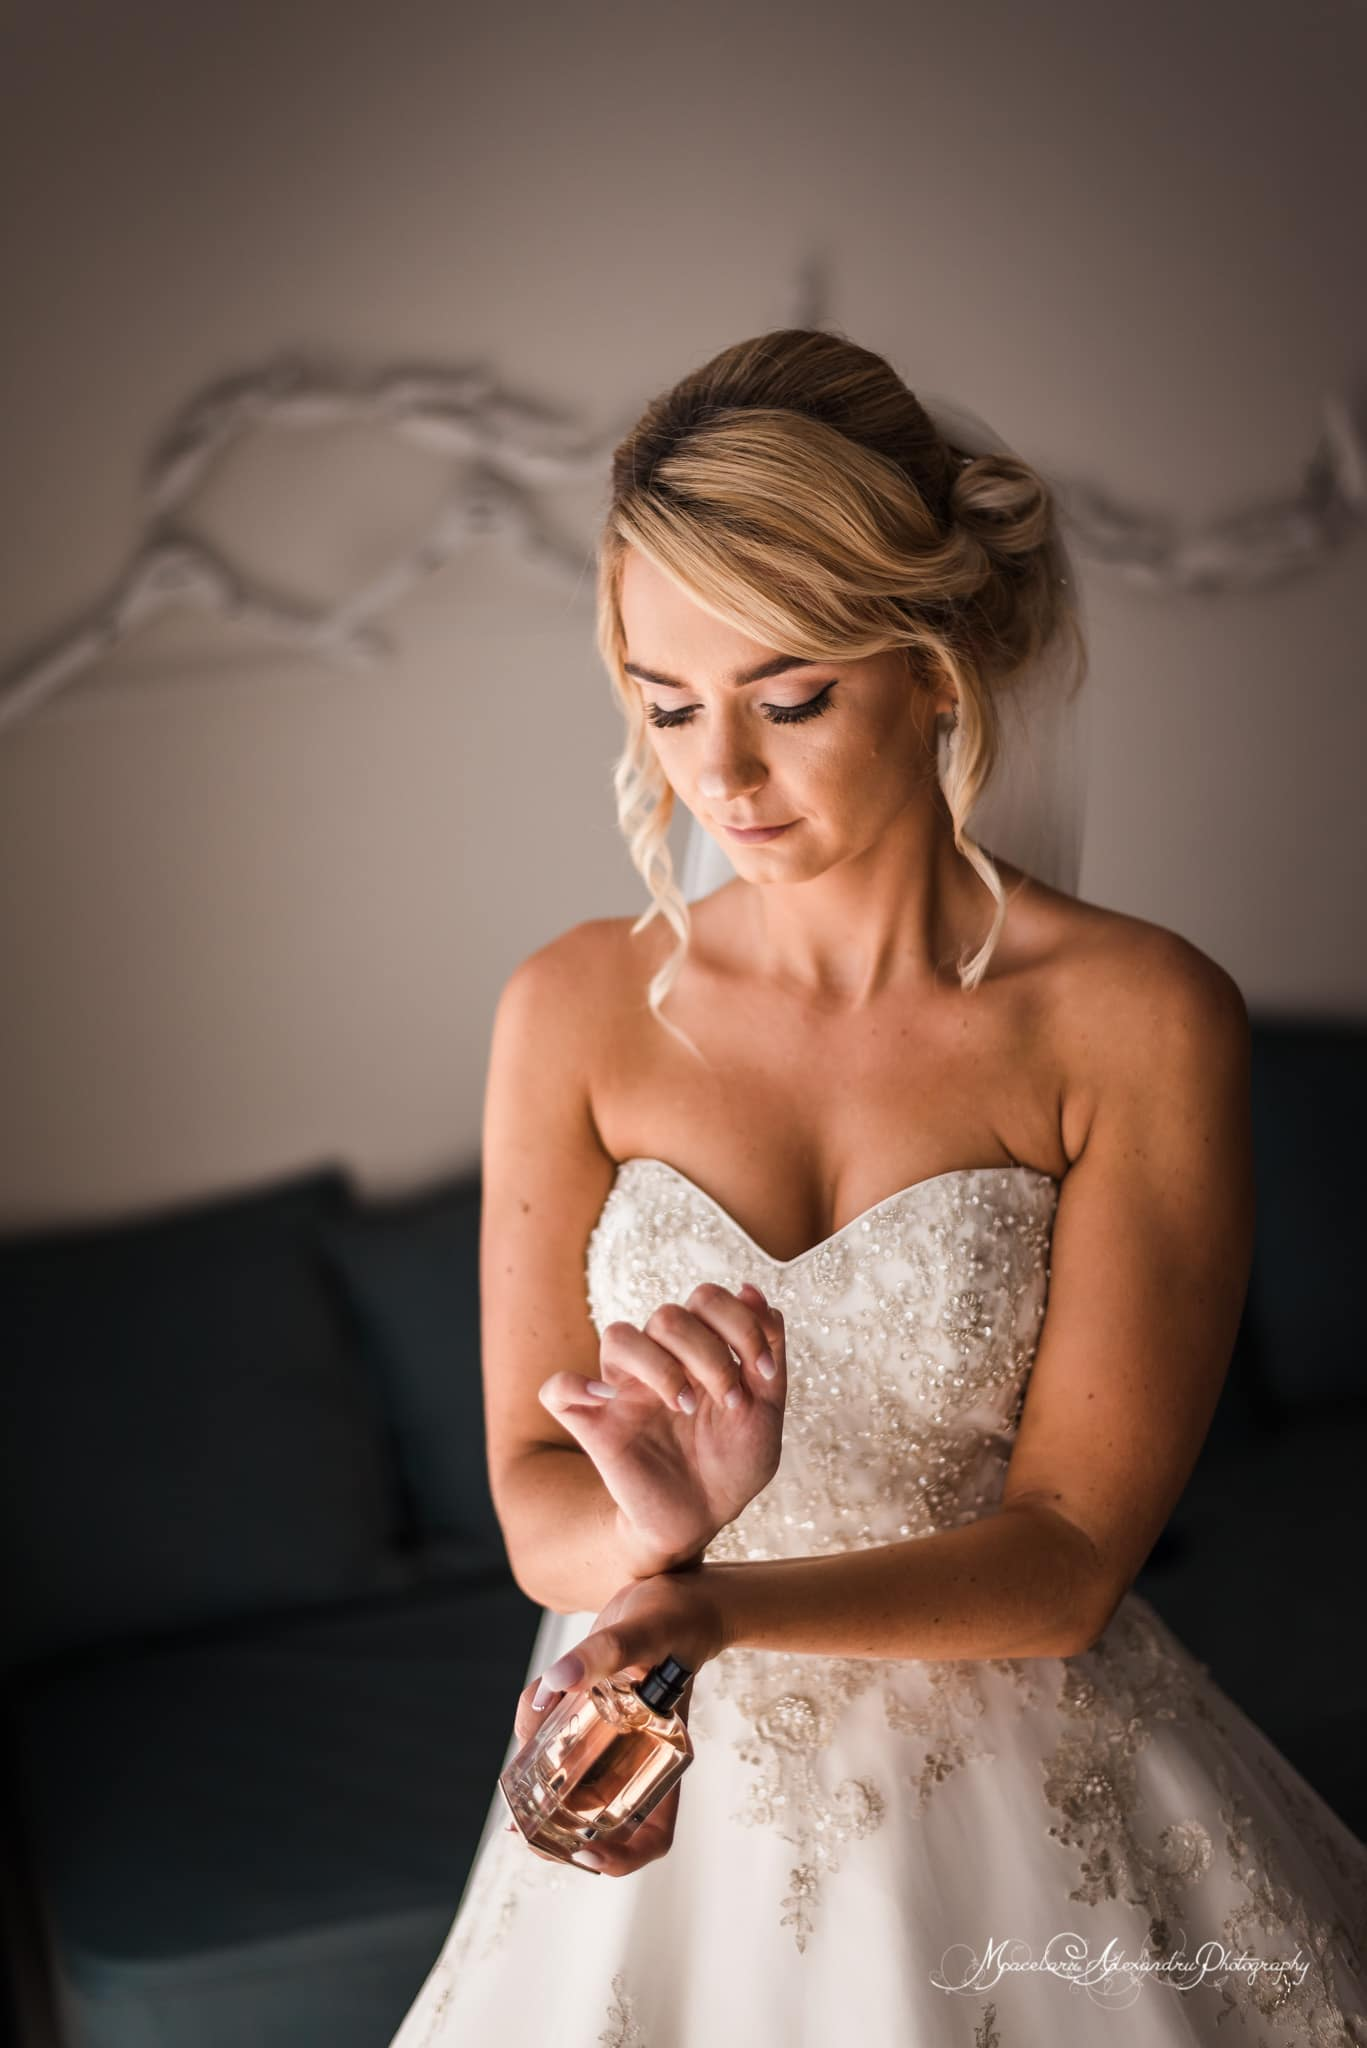 Wedding photography in Paphos - The bride is getting ready in her room